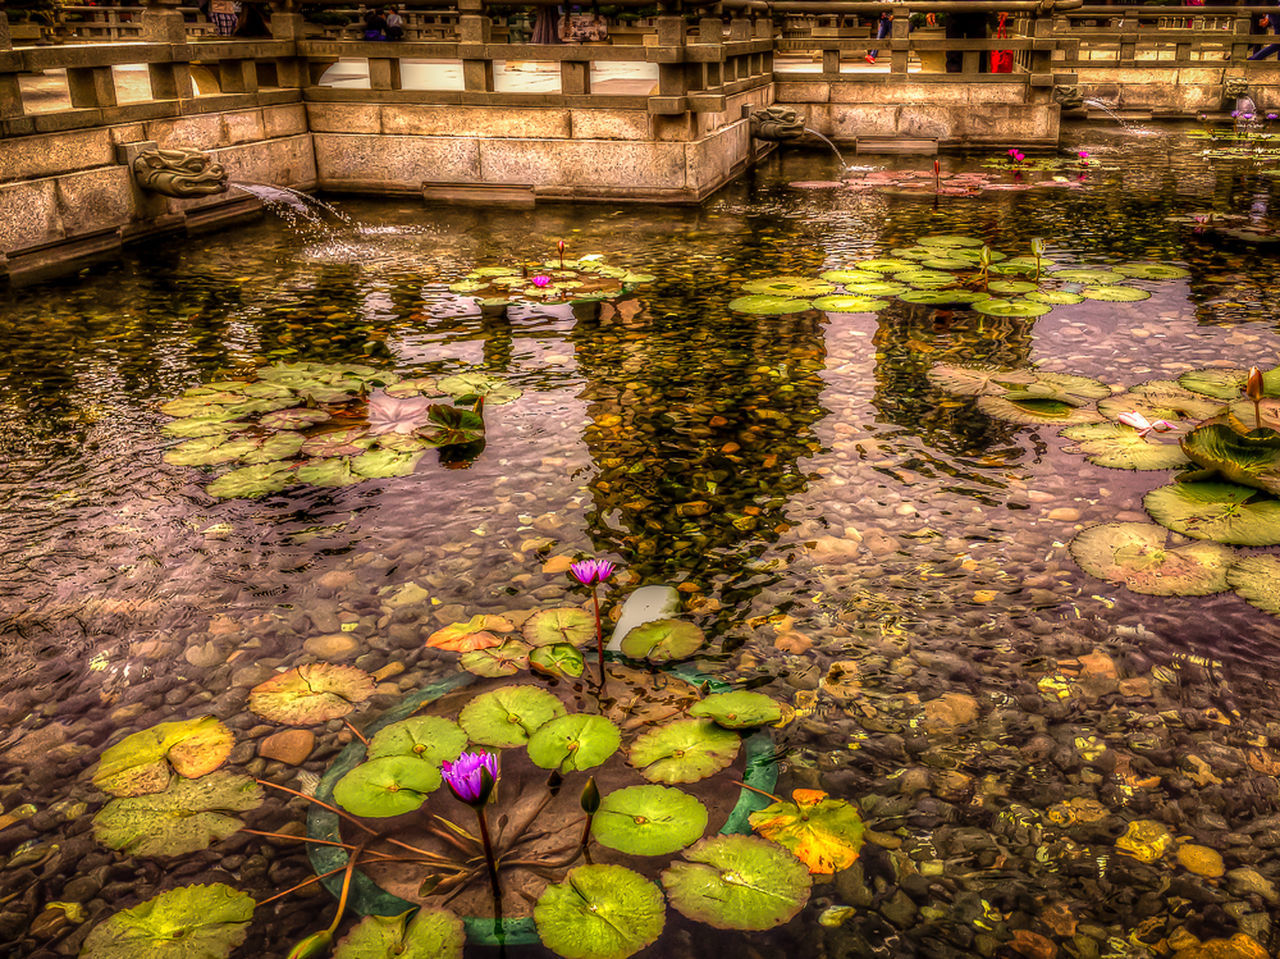 Iphonephotography Hdrphotography Tonemapping Nature Photography Flower Photography HDR Park Water Lillies